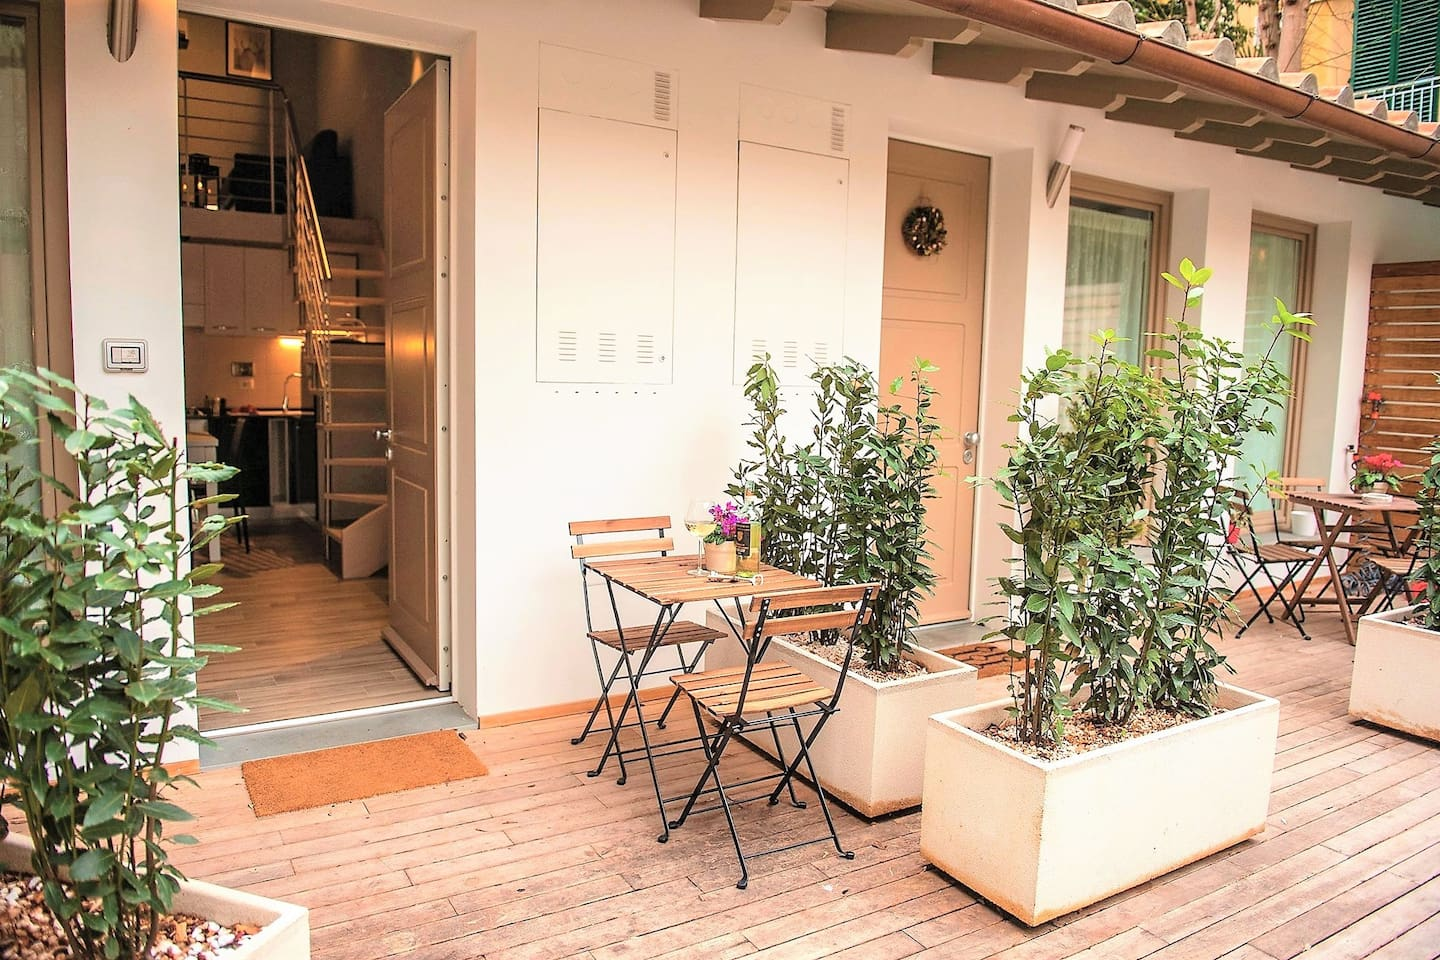 Our private terrace on the shared courtyard